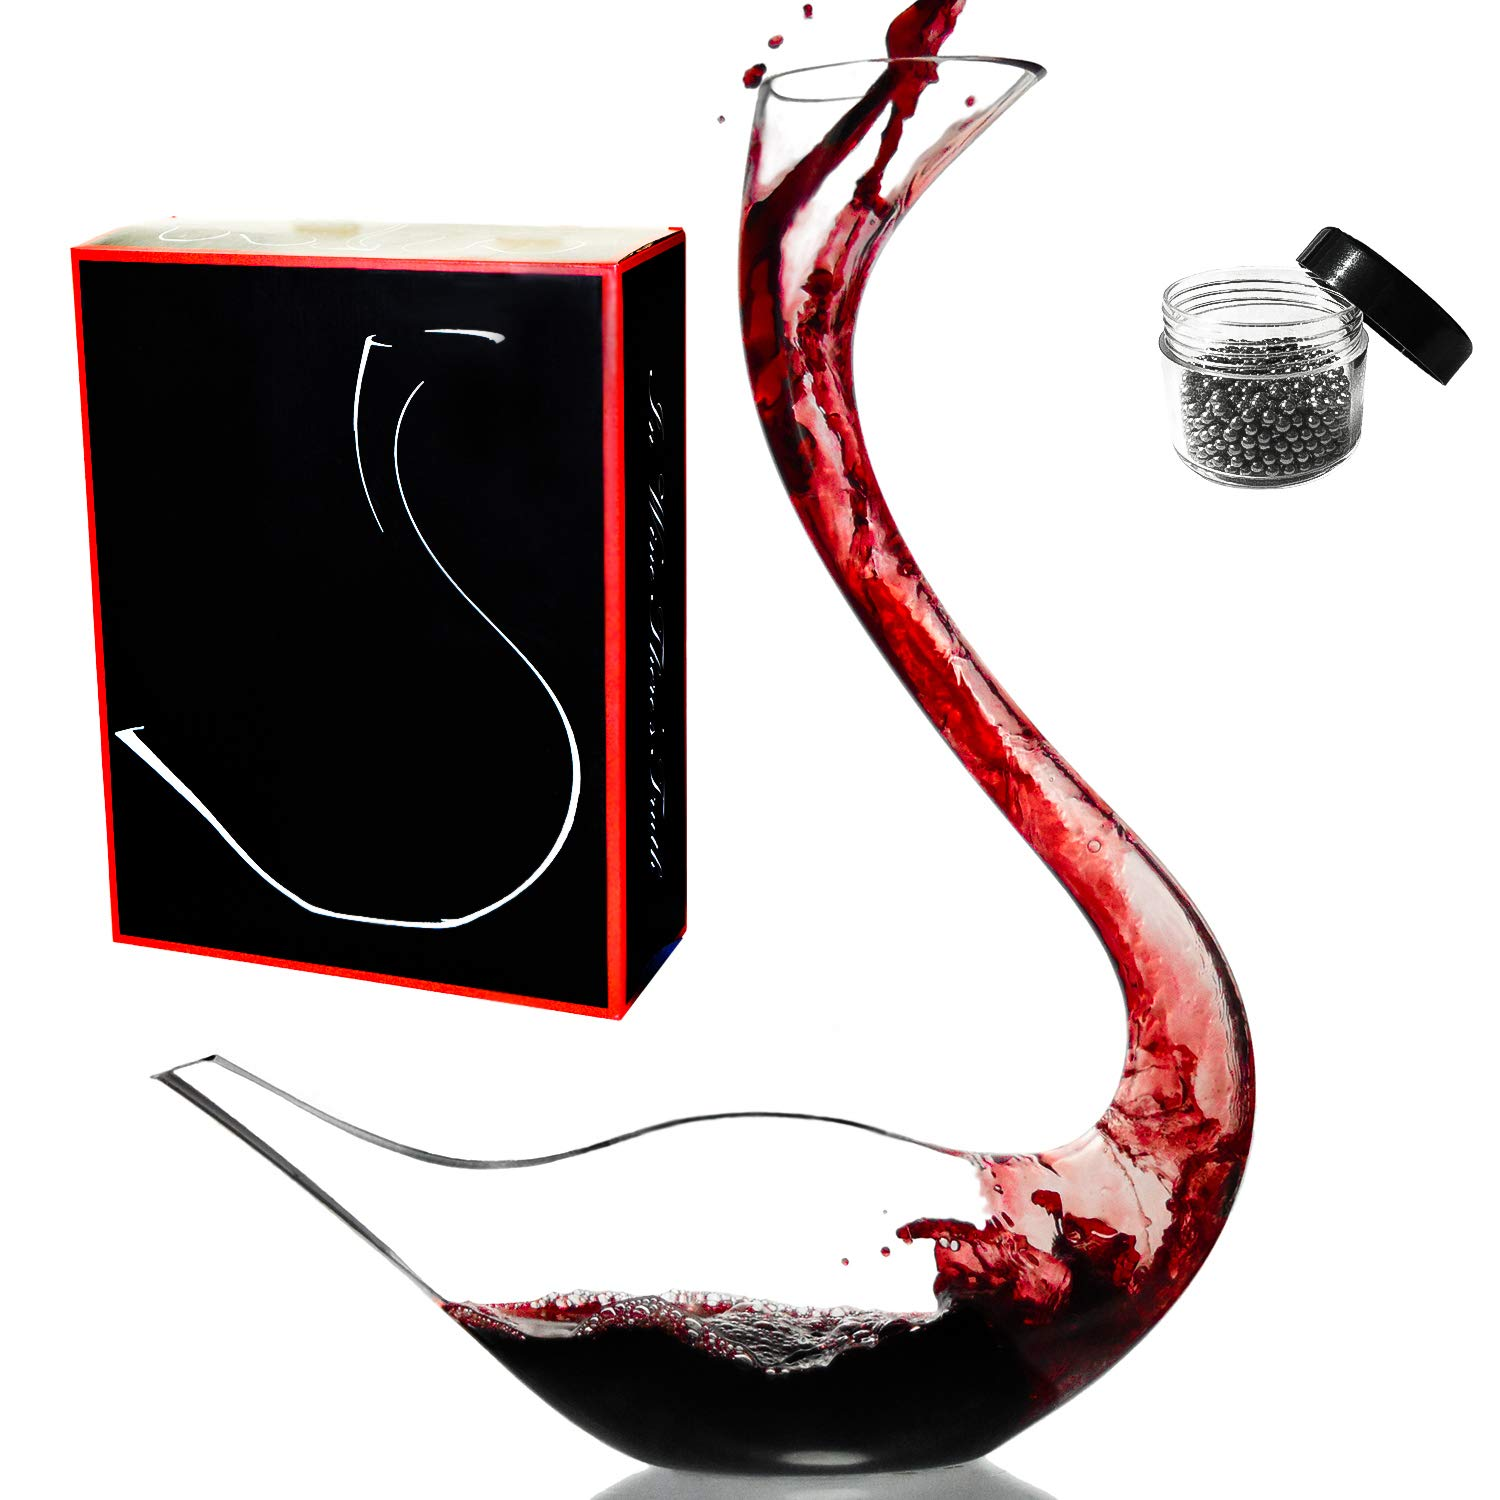 Amazing Home Cygnus Wine Decanter 100% Hand Blown Lead-free Crystal Glass Swan Decanter, Prepackaged Red Wine Carafe, Wine Gift, Wine Accessories,Gift Box Wrapped and Free Cleaning Beads Set EGRET-T